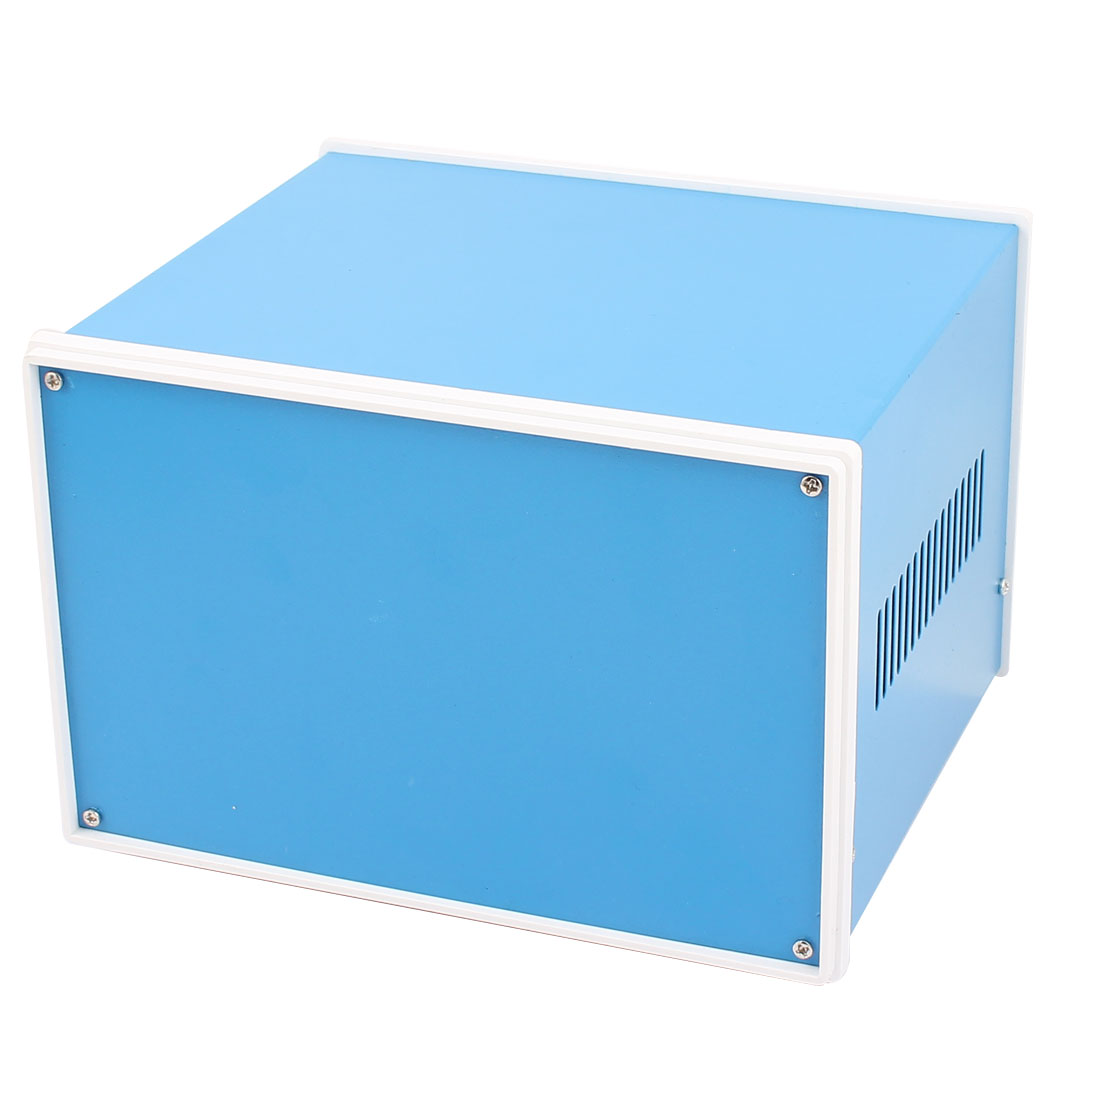 Metal Electronic Project Junction Box Enclosure Case Blue 202mm x 182mm x 135mm